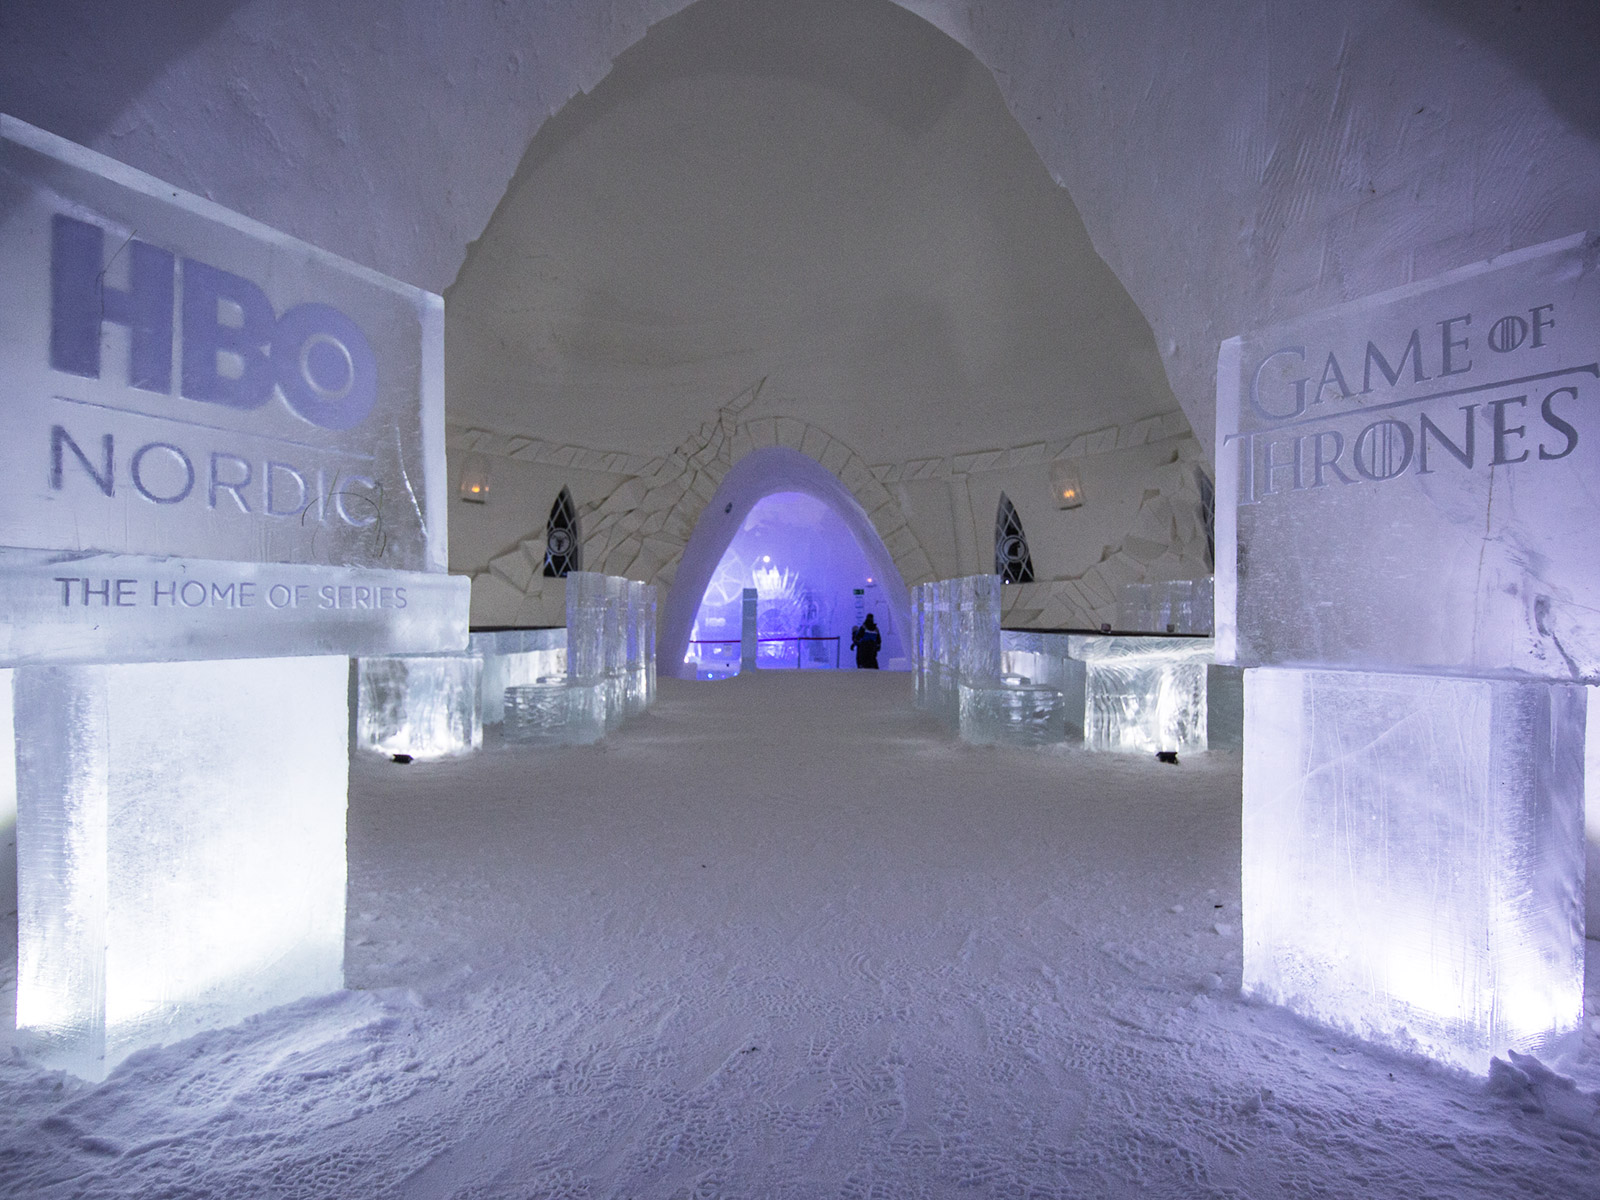 hbo game of thrones ice hotel